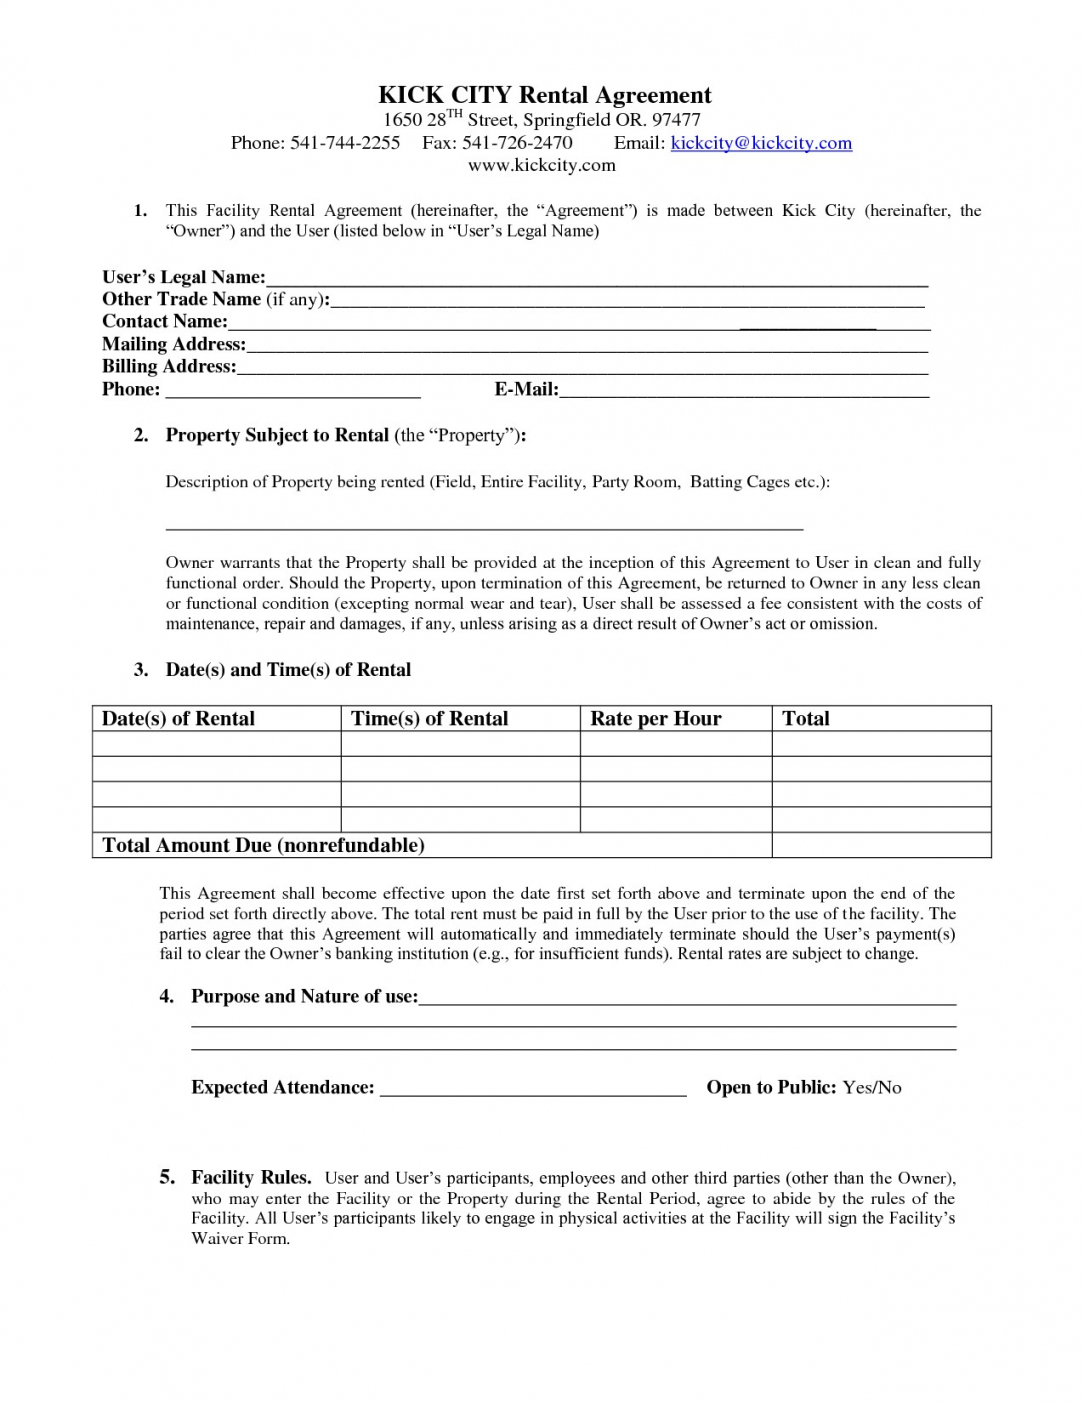 Here The Hall Rental Agreement Pin Banquet Hall Rental Contract Form For Banquet Hall Rental Agreement Template